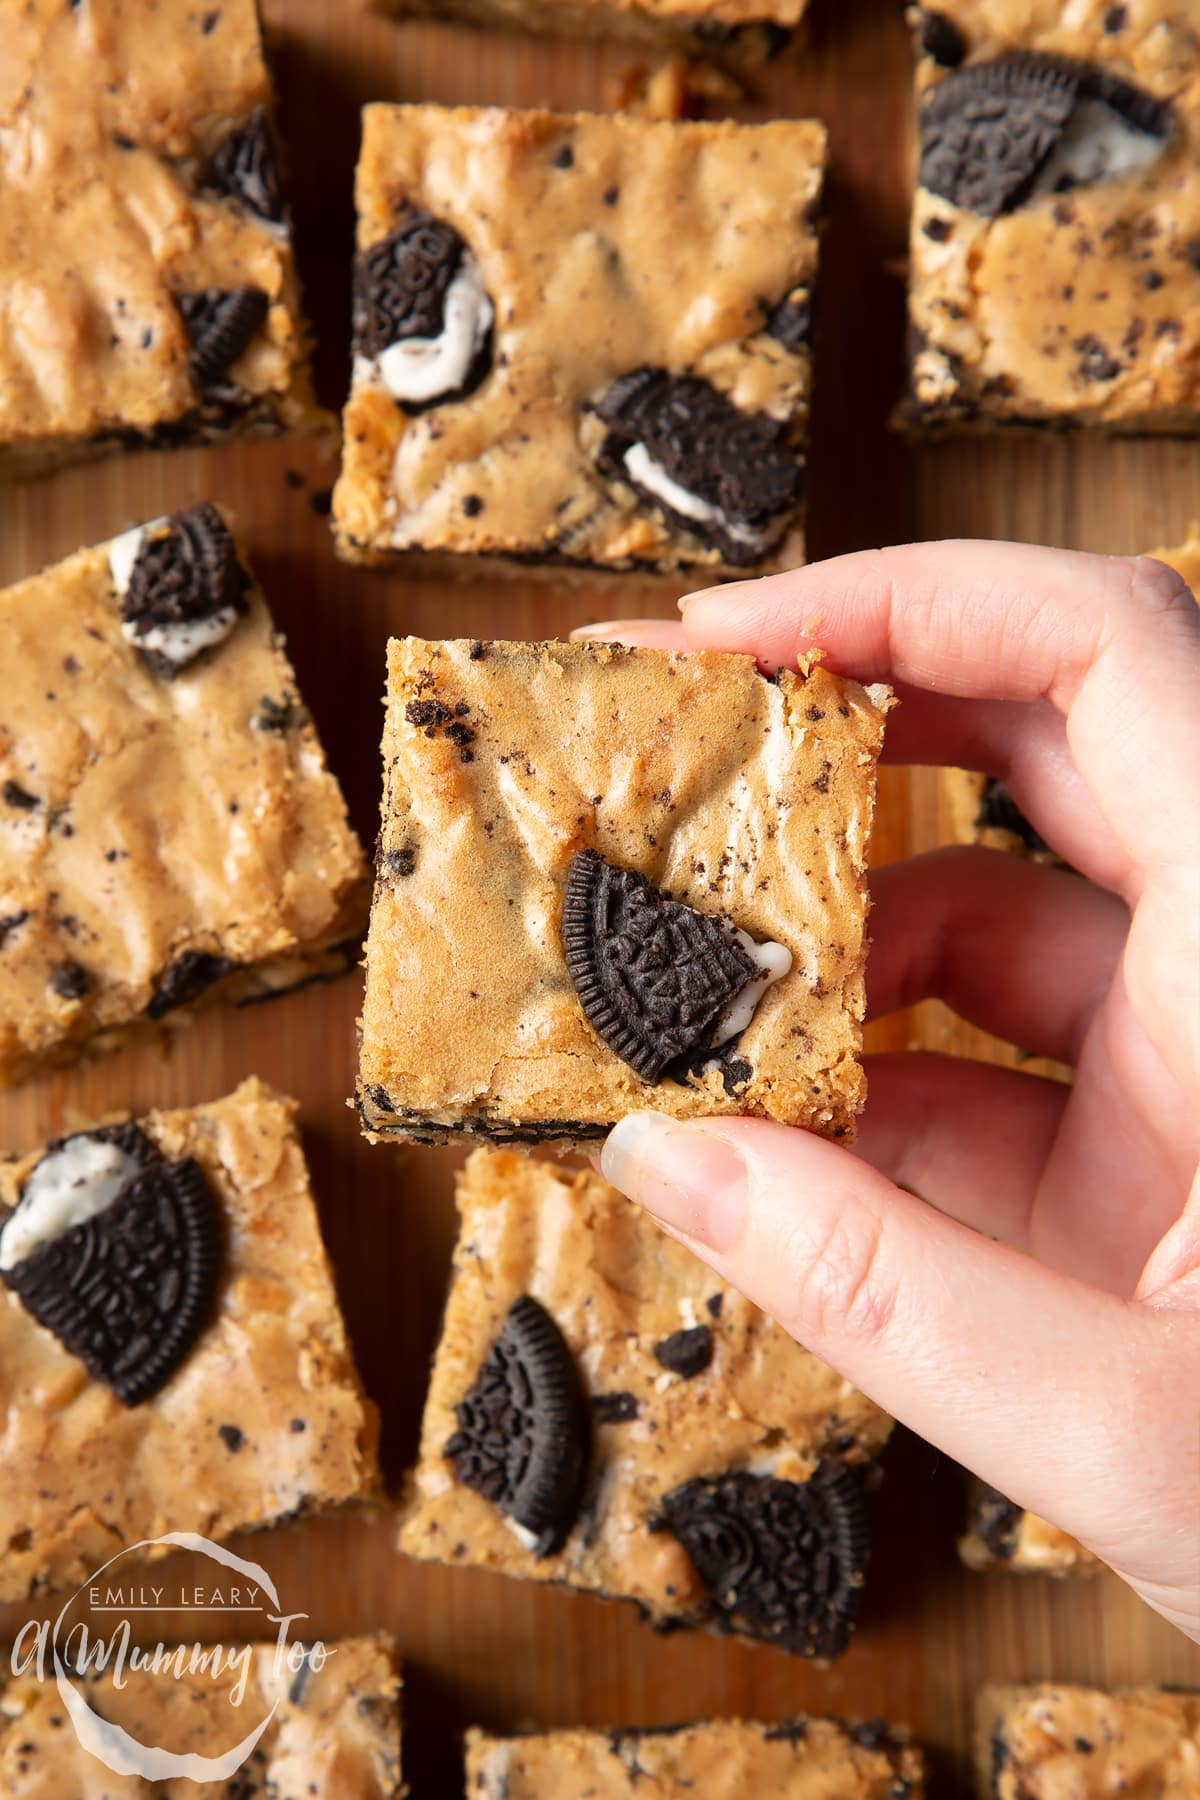 Overhead shot of a hand holding a square Oreo Blondie over a wooden tray